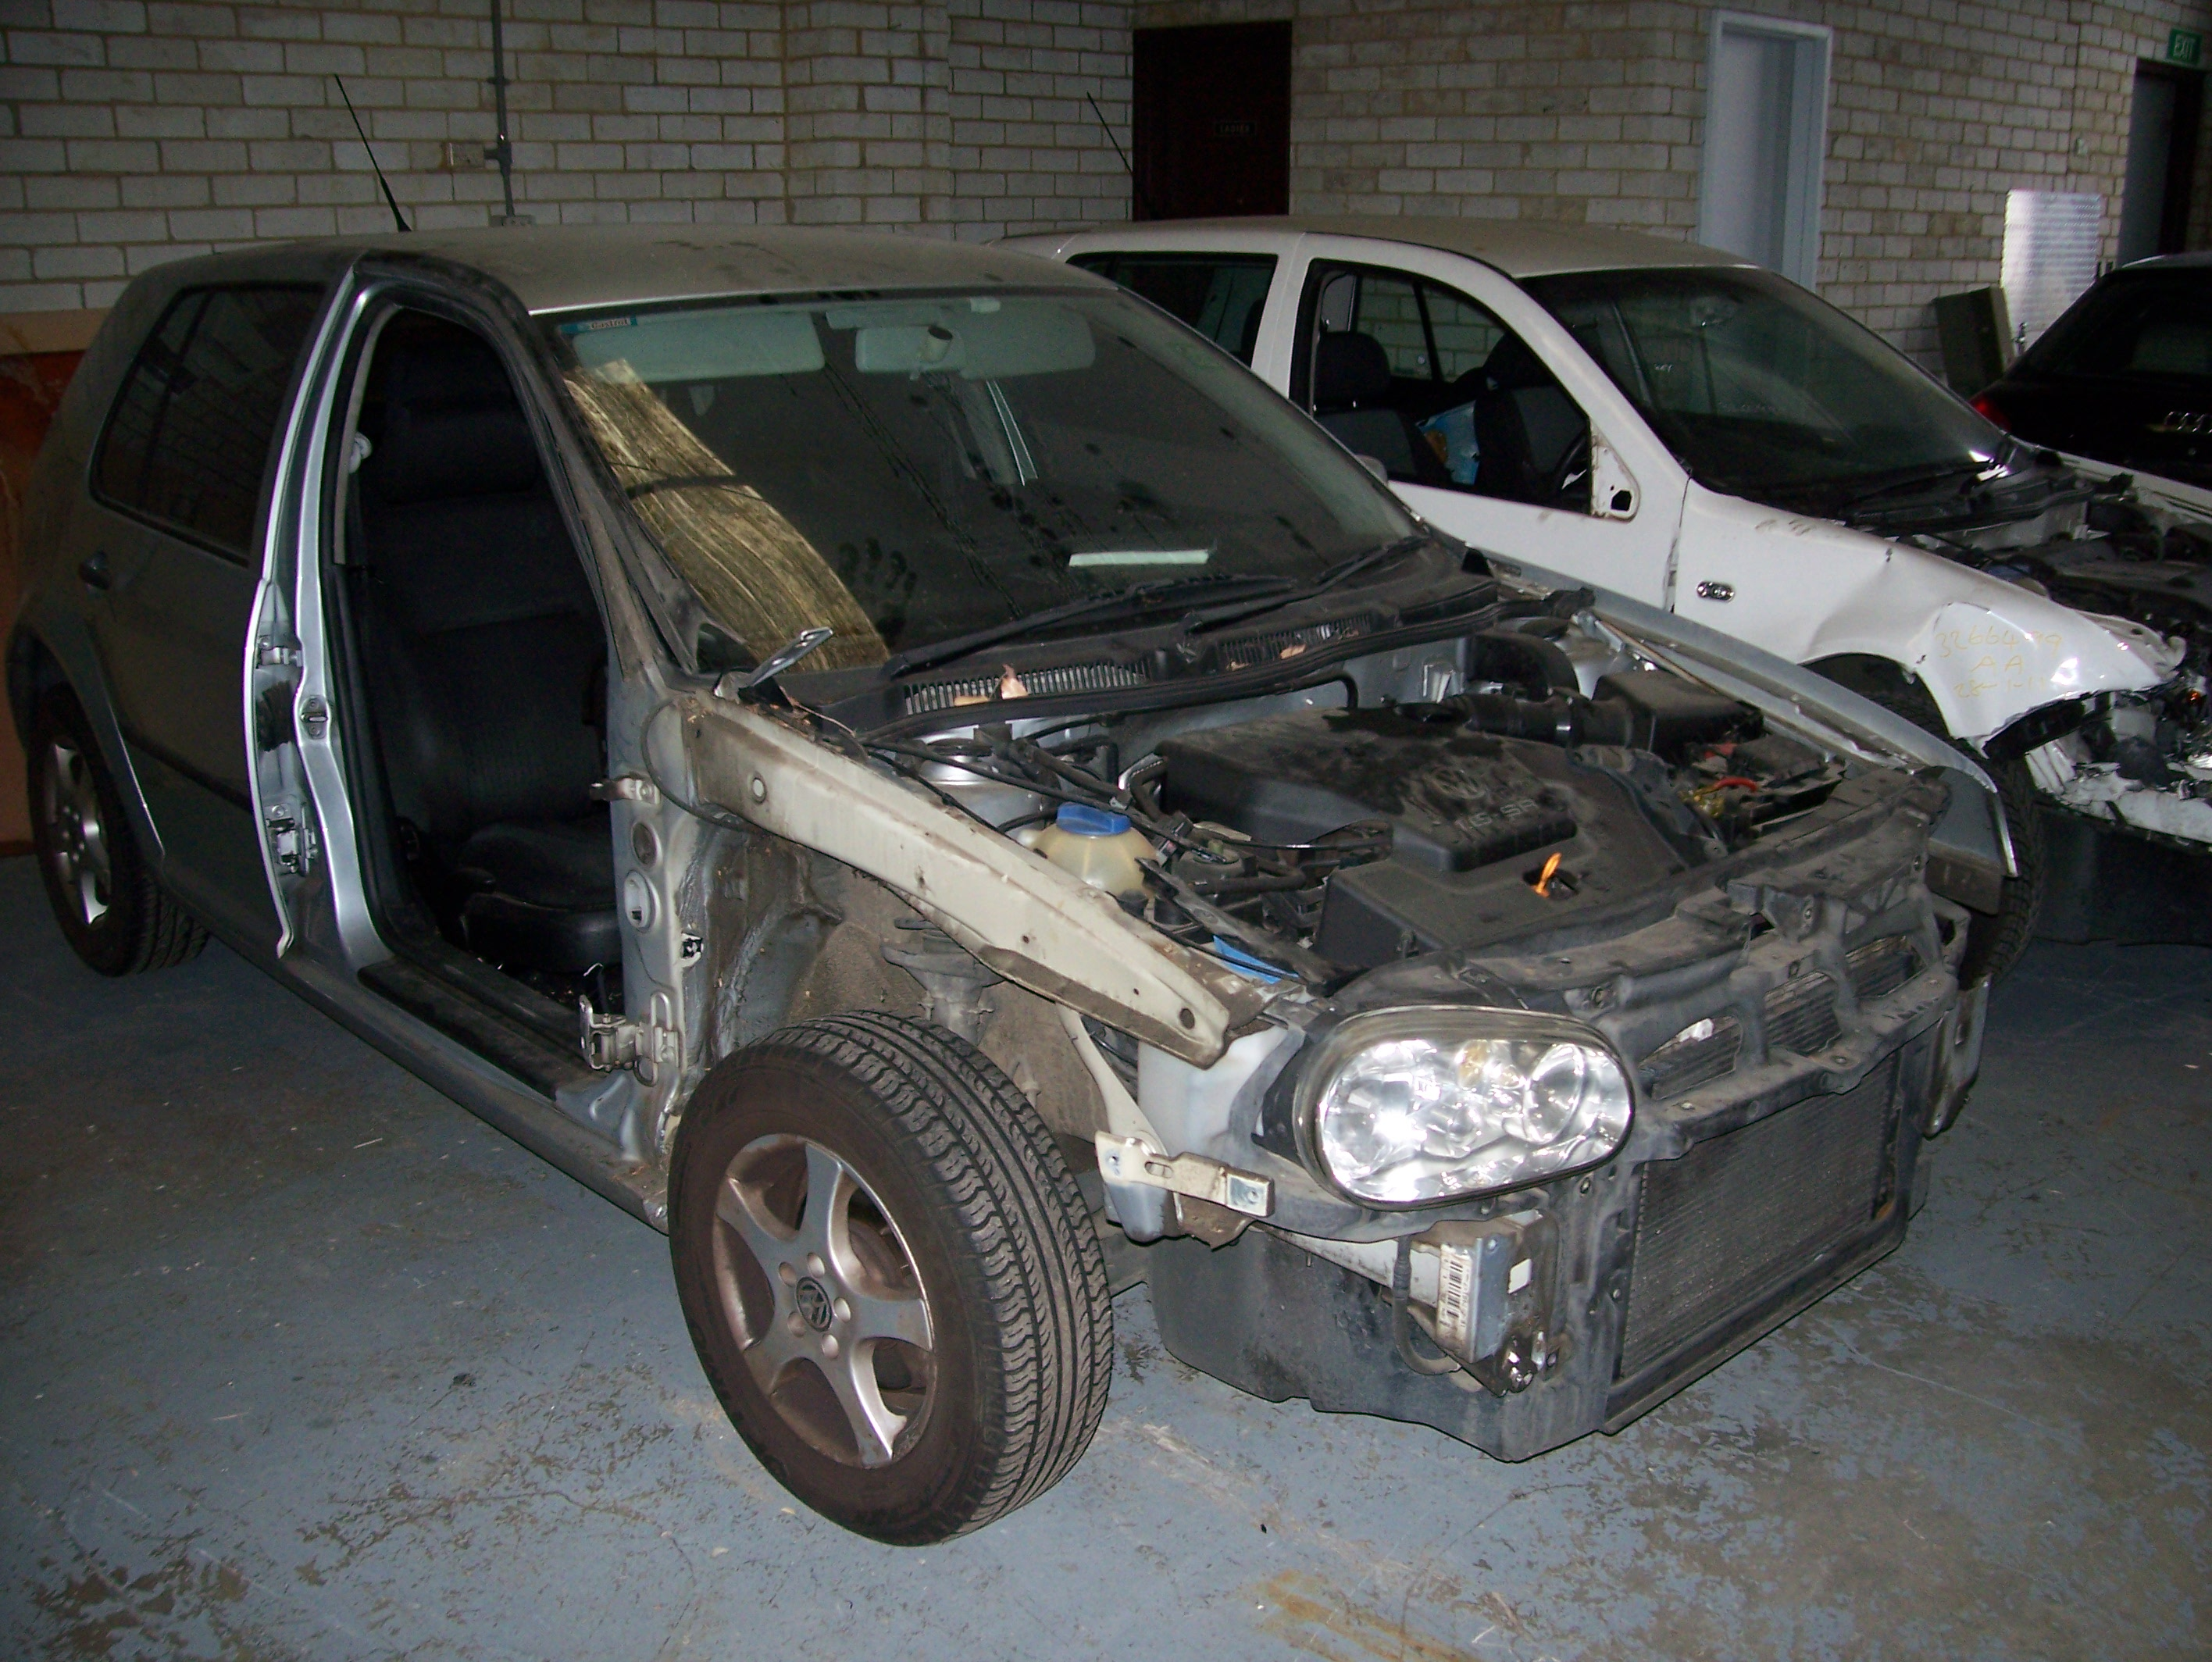 Volkswagen Golf4 All Parts Available